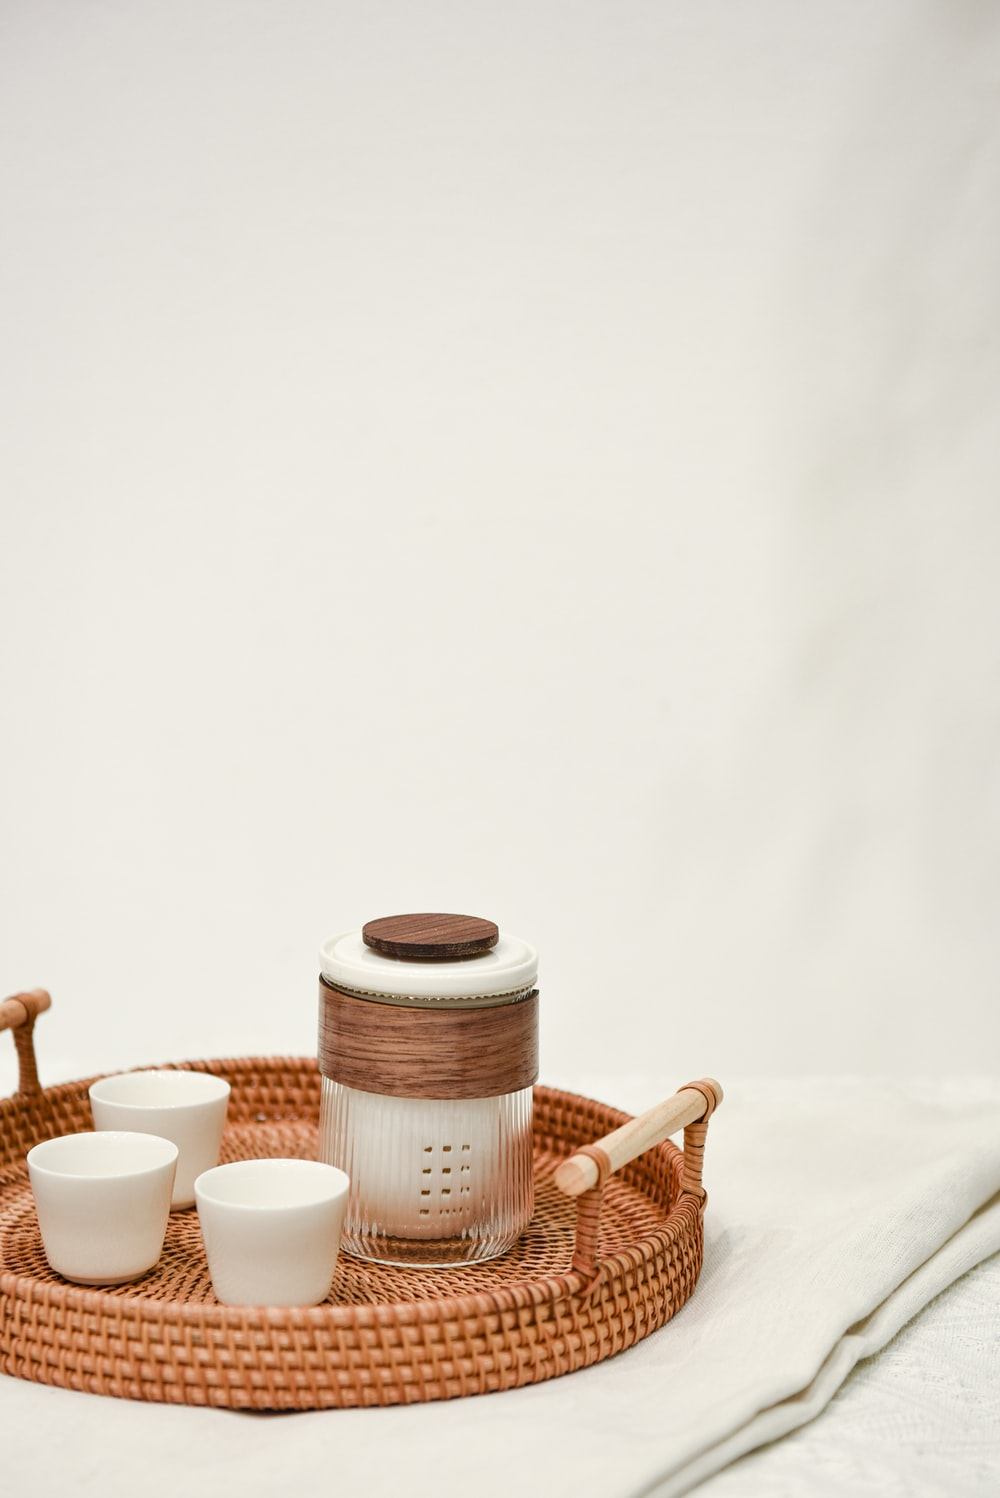 brown and white ceramic mugs on brown wooden table